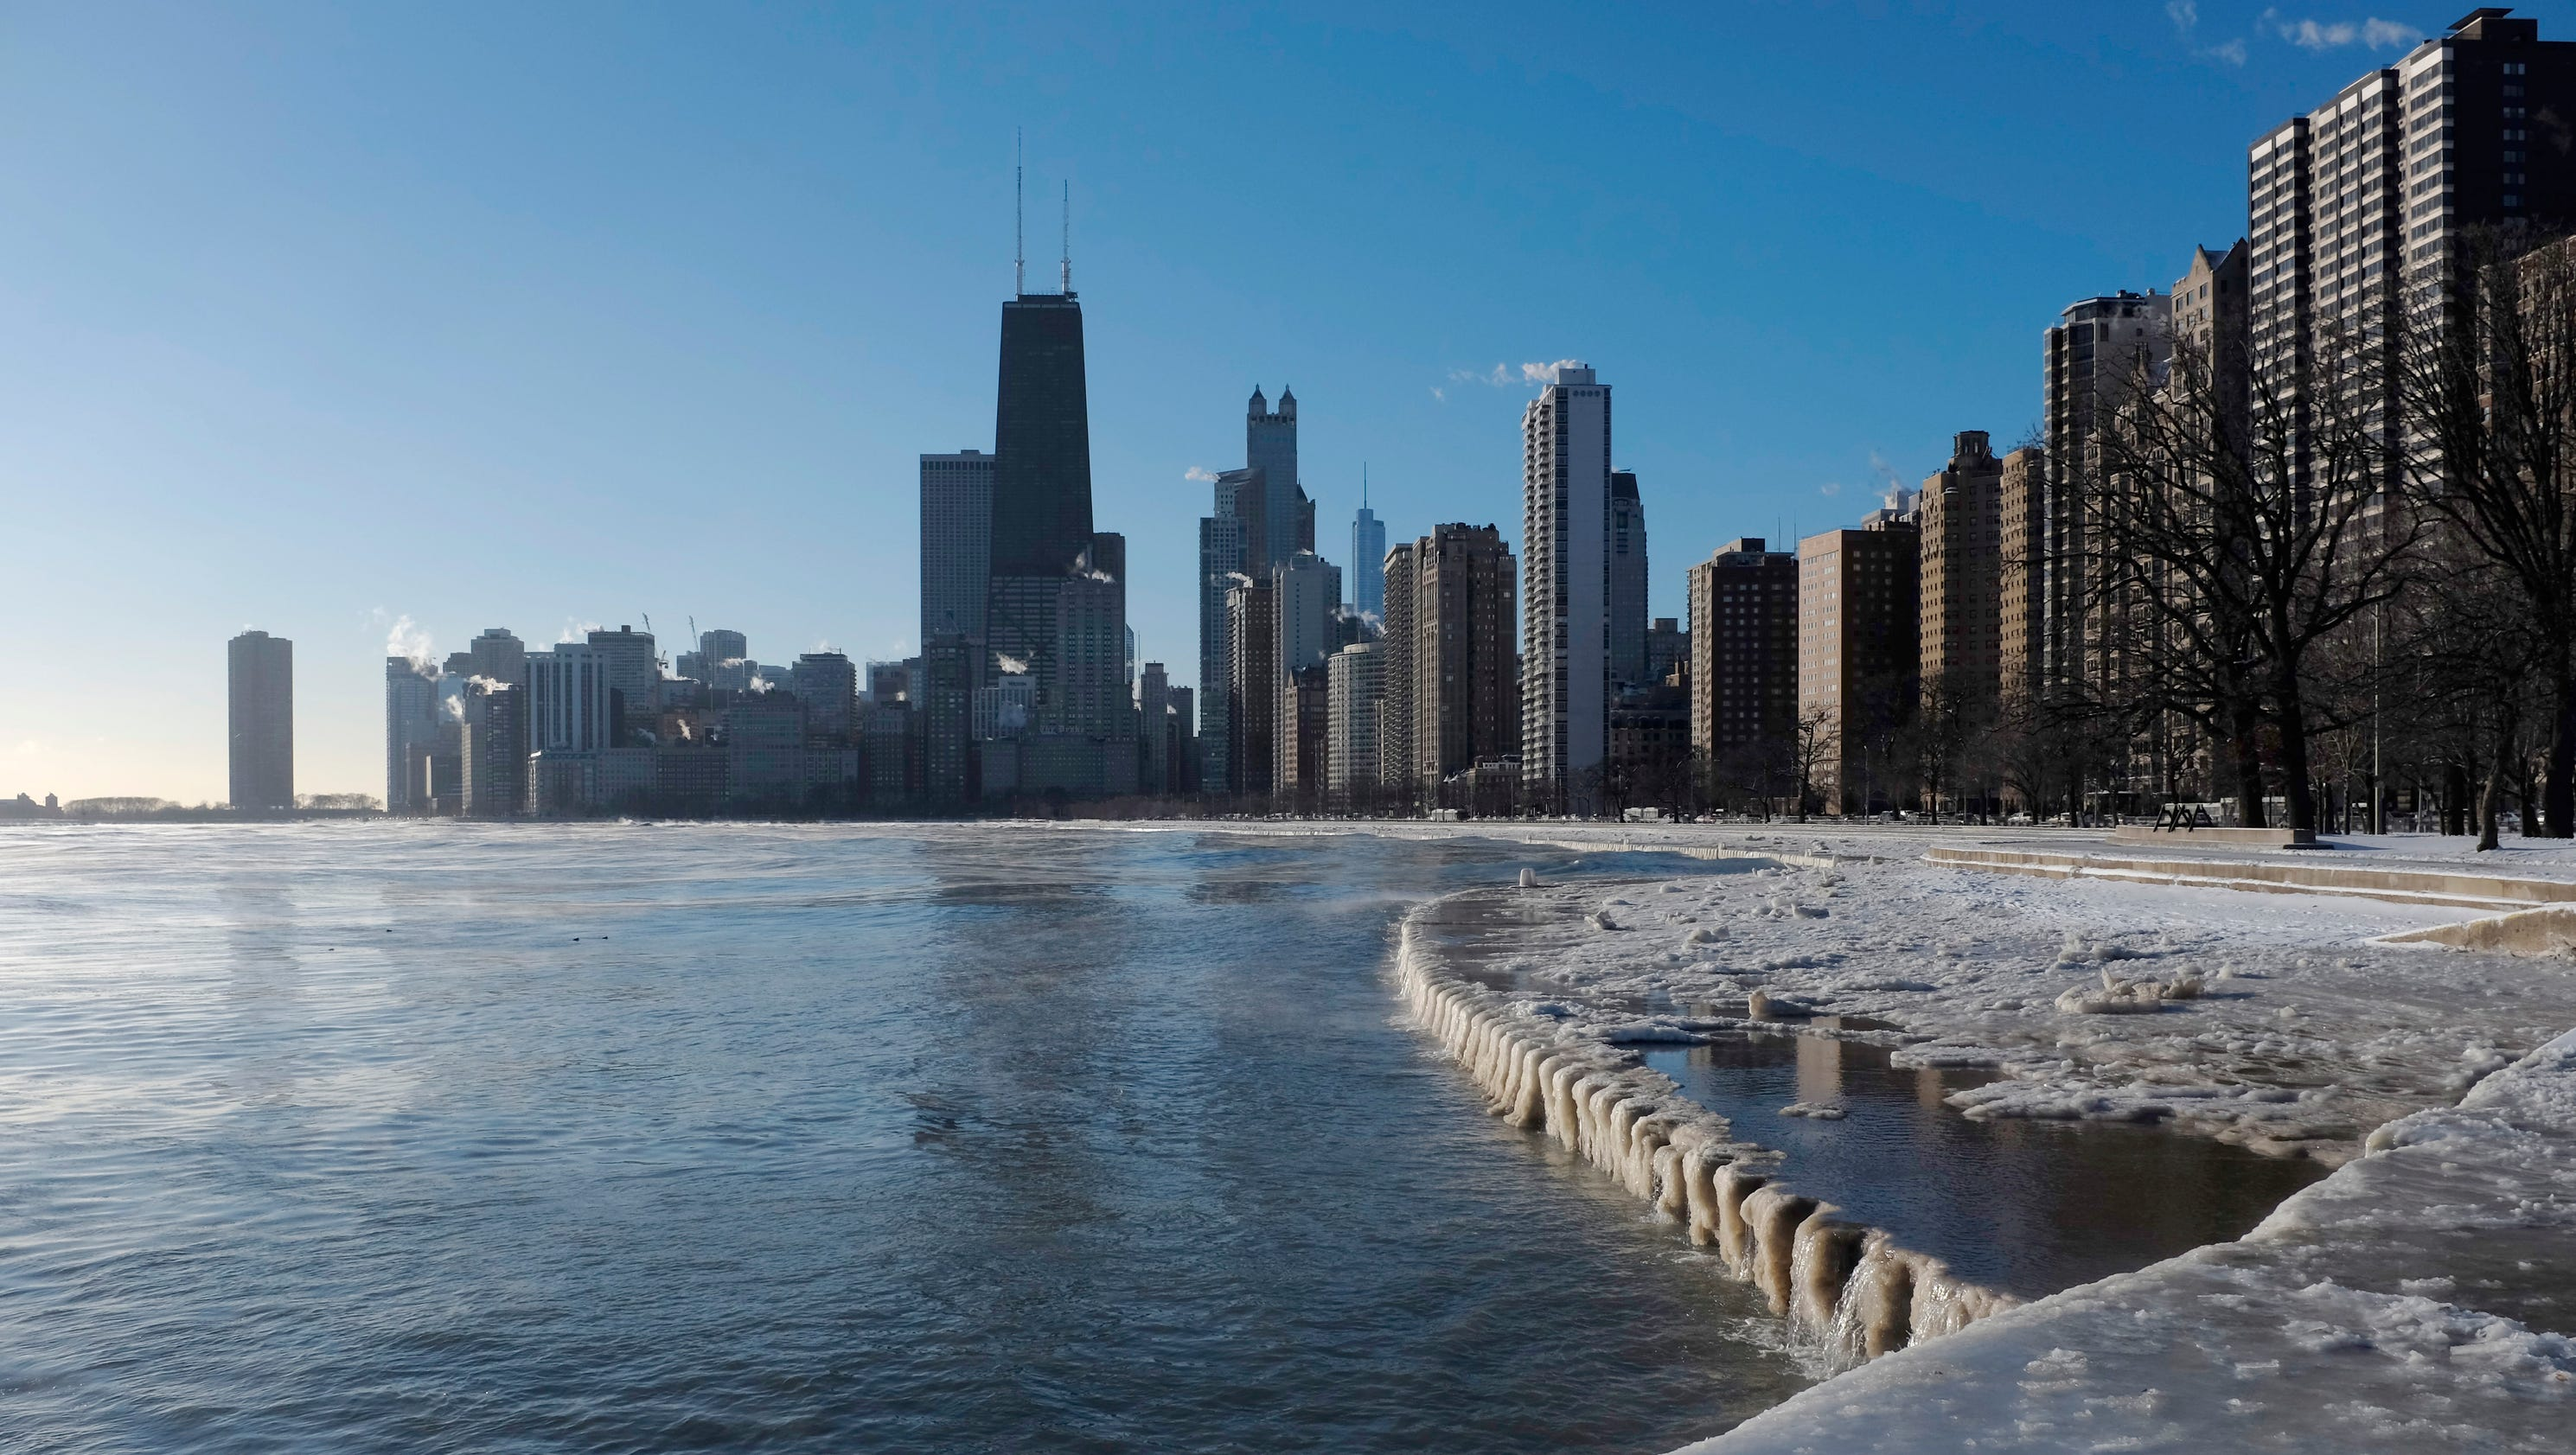 sick of winter  january thaw on the way